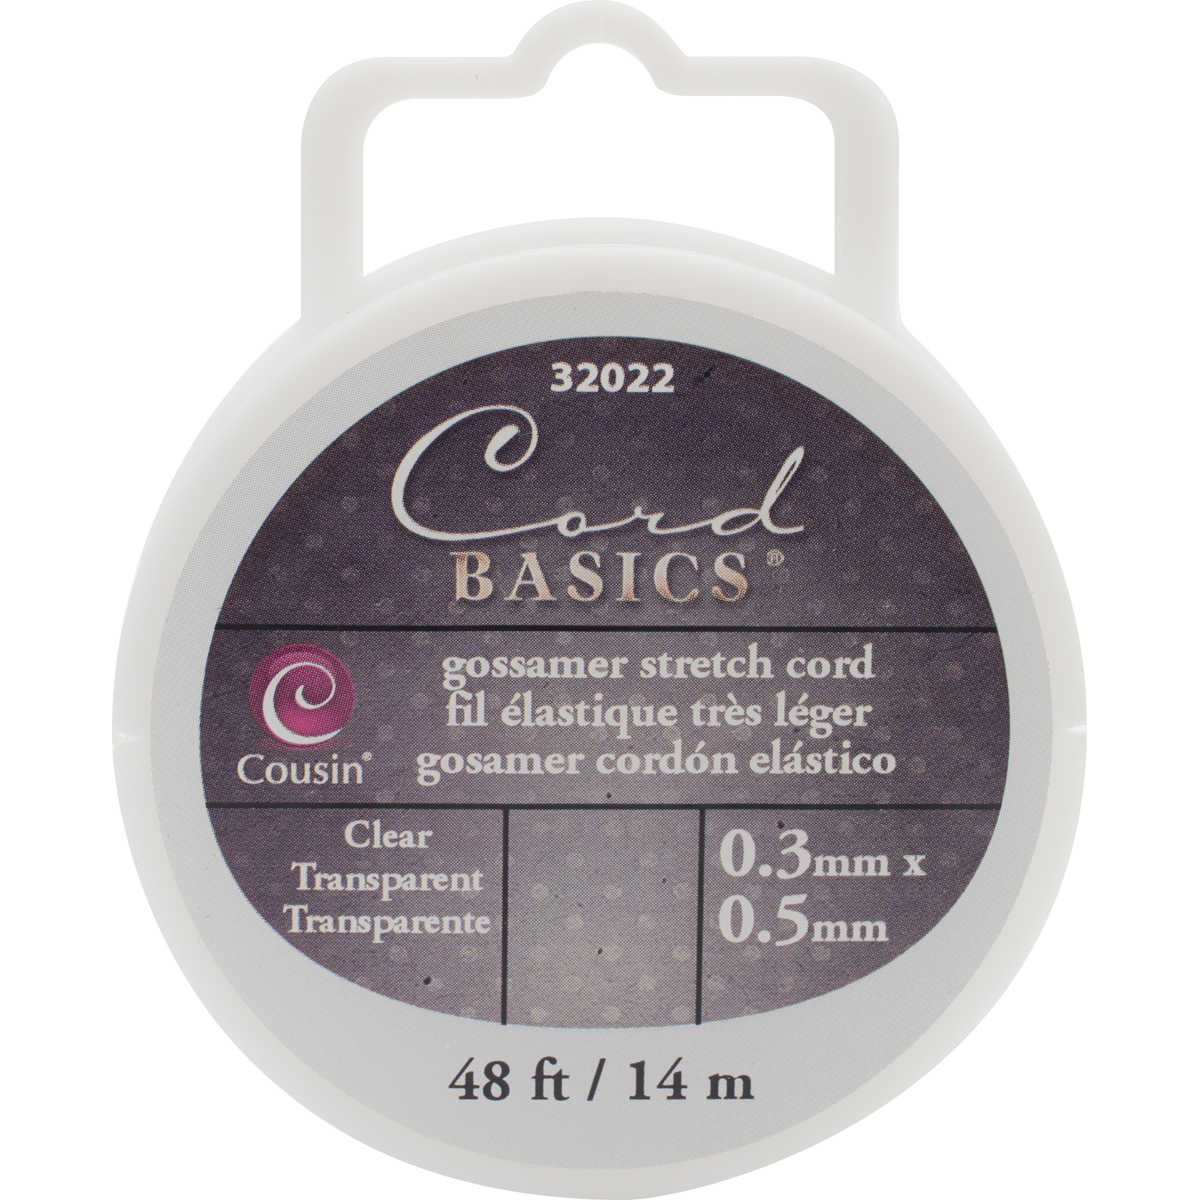 Cord Basics Gossamer Stretch Cord .5mmX48'-Clear